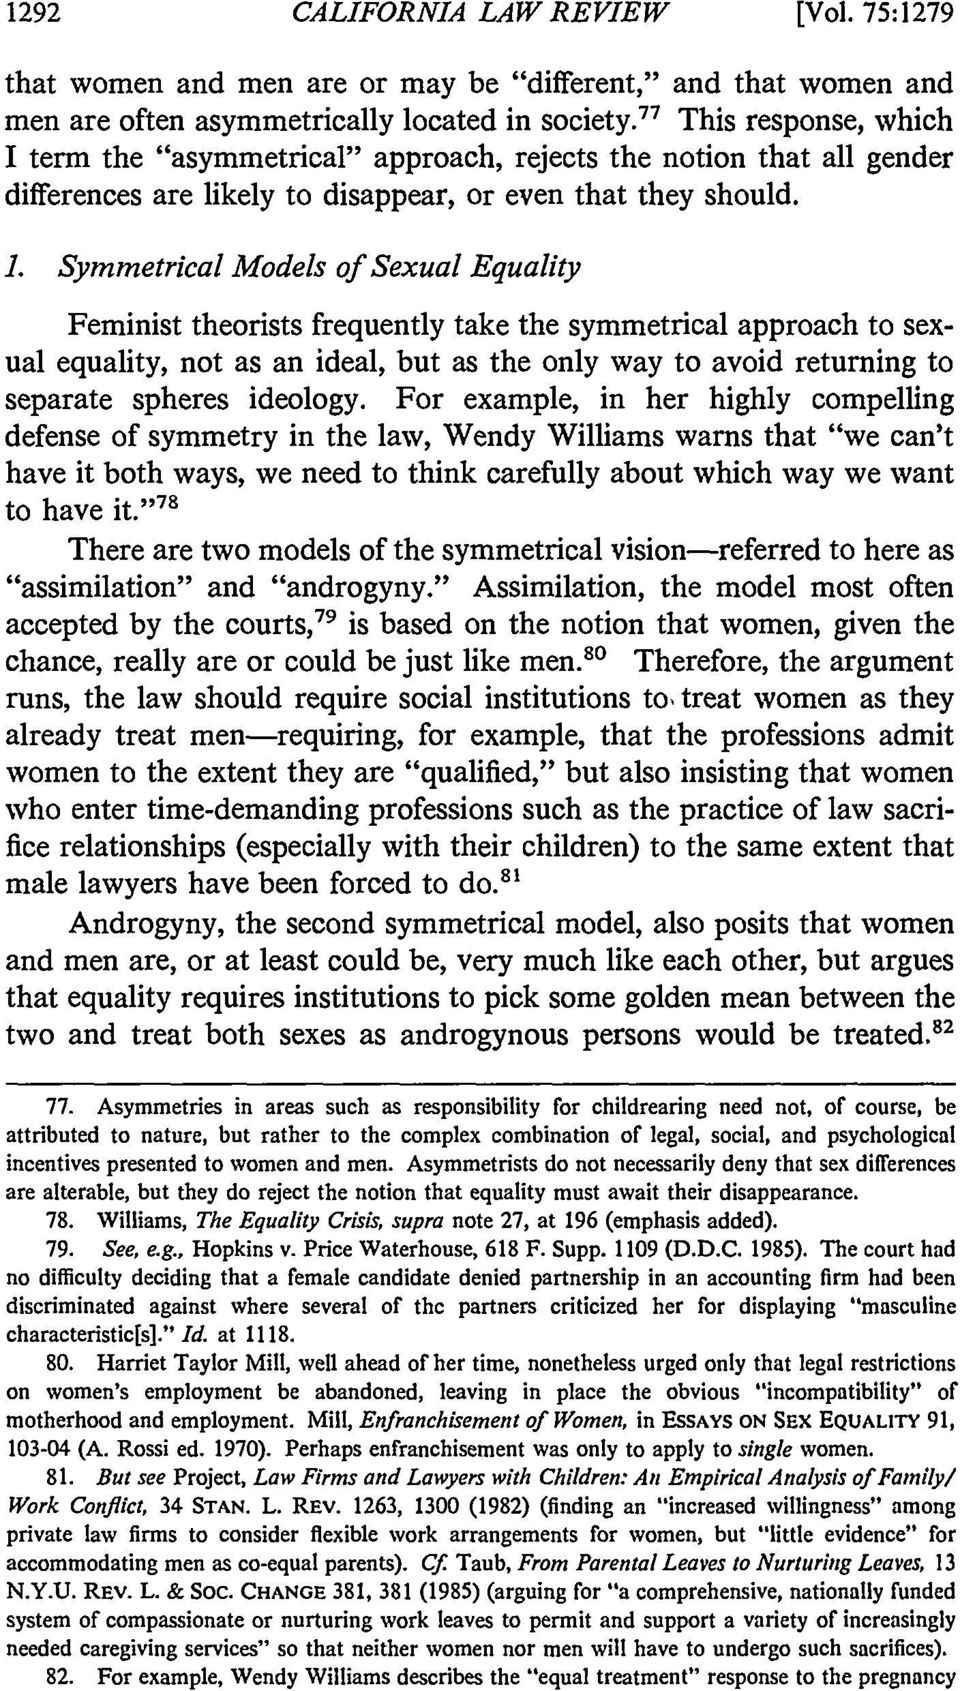 Symmetrical Models of Sexual Equality Feminist theorists frequently take the symmetrical approach to sexual equality, not as an ideal, but as the only way to avoid returning to separate spheres